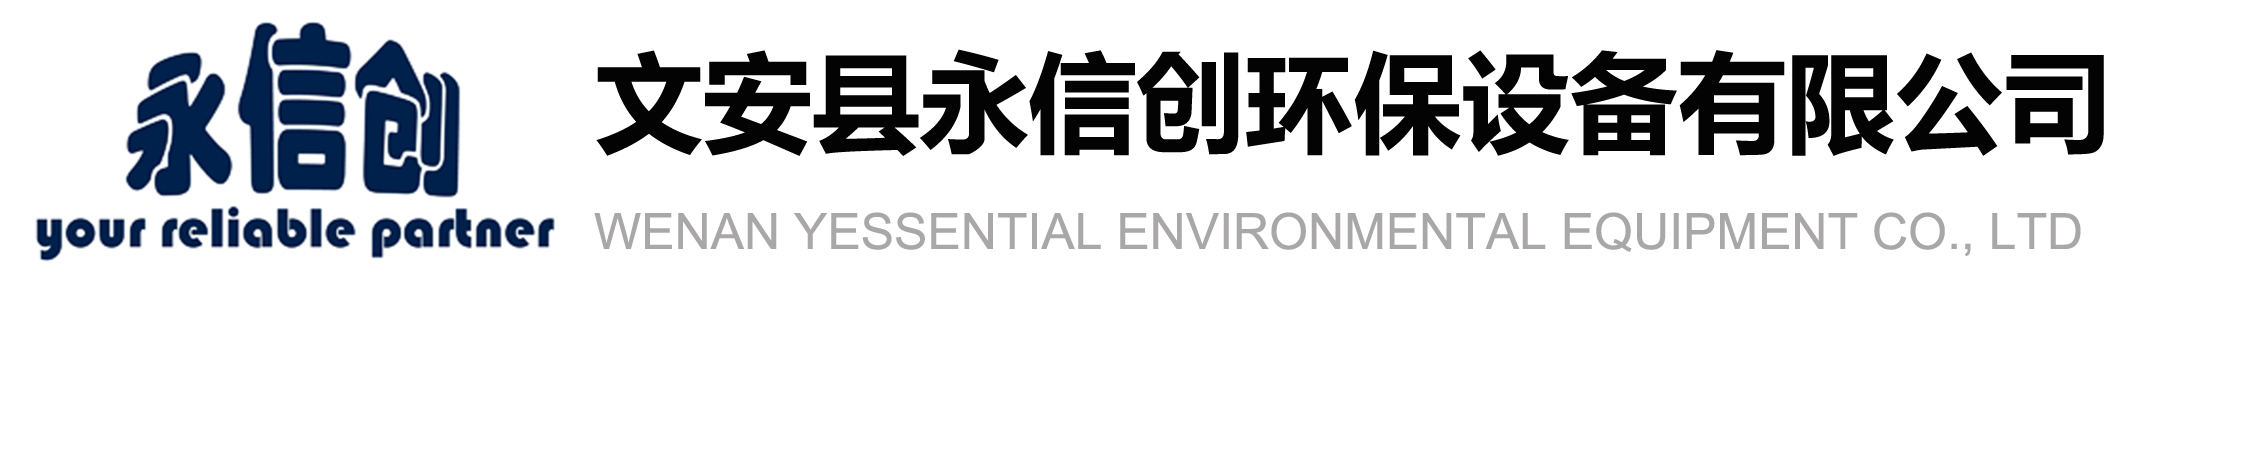 Wenan Yessential Environmental Equipment Co.,Ltd